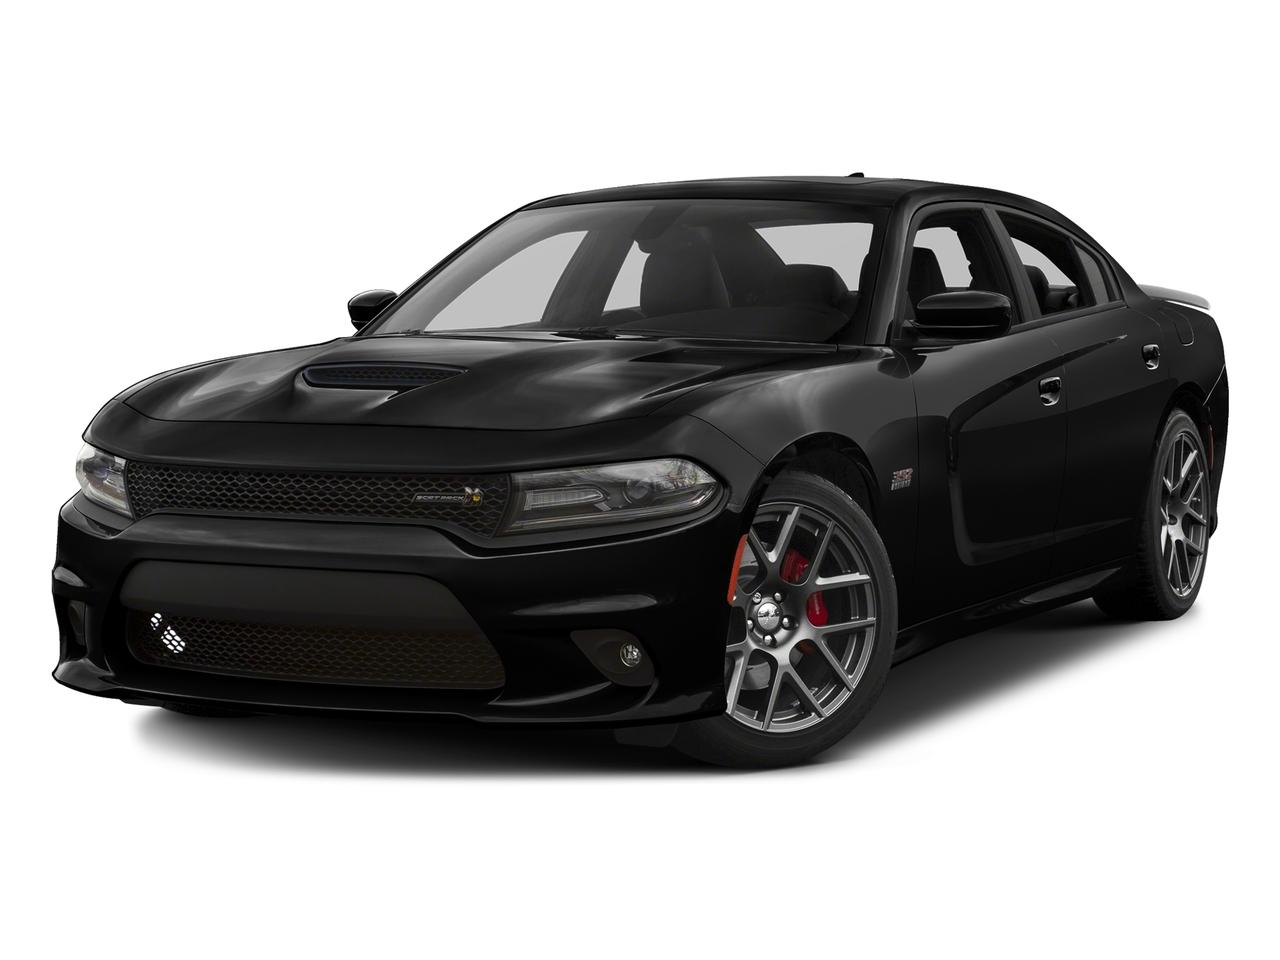 2016 Dodge Charger Vehicle Photo in Franklin, TN 37067